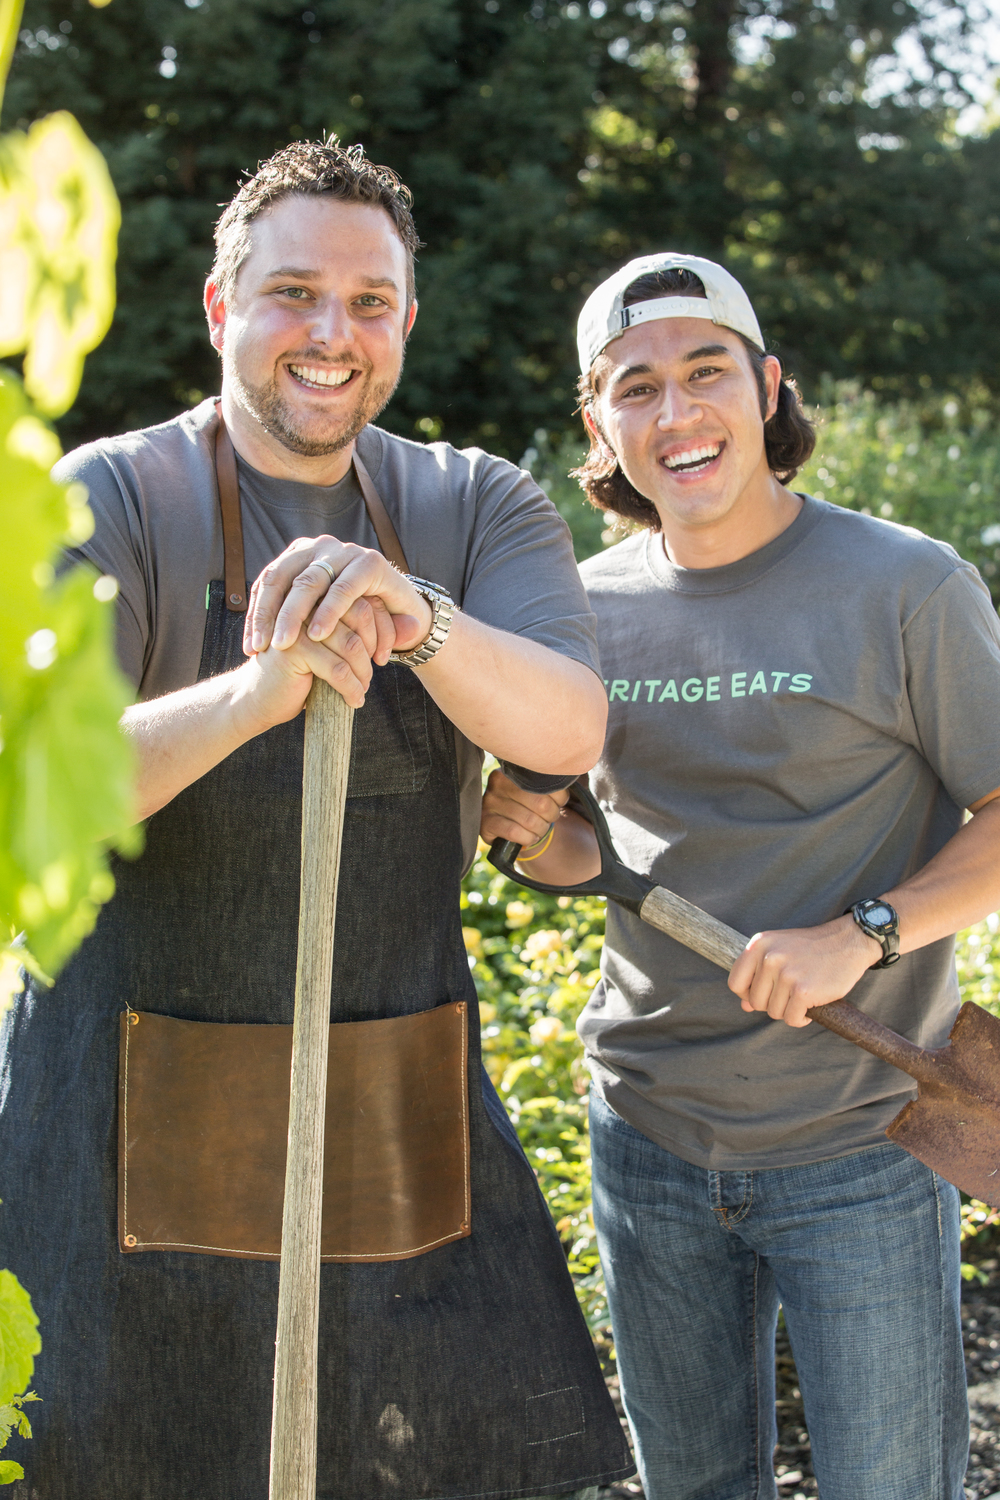 Heritage Eats co-founder Chef Jason Kupper and Ben Koenig